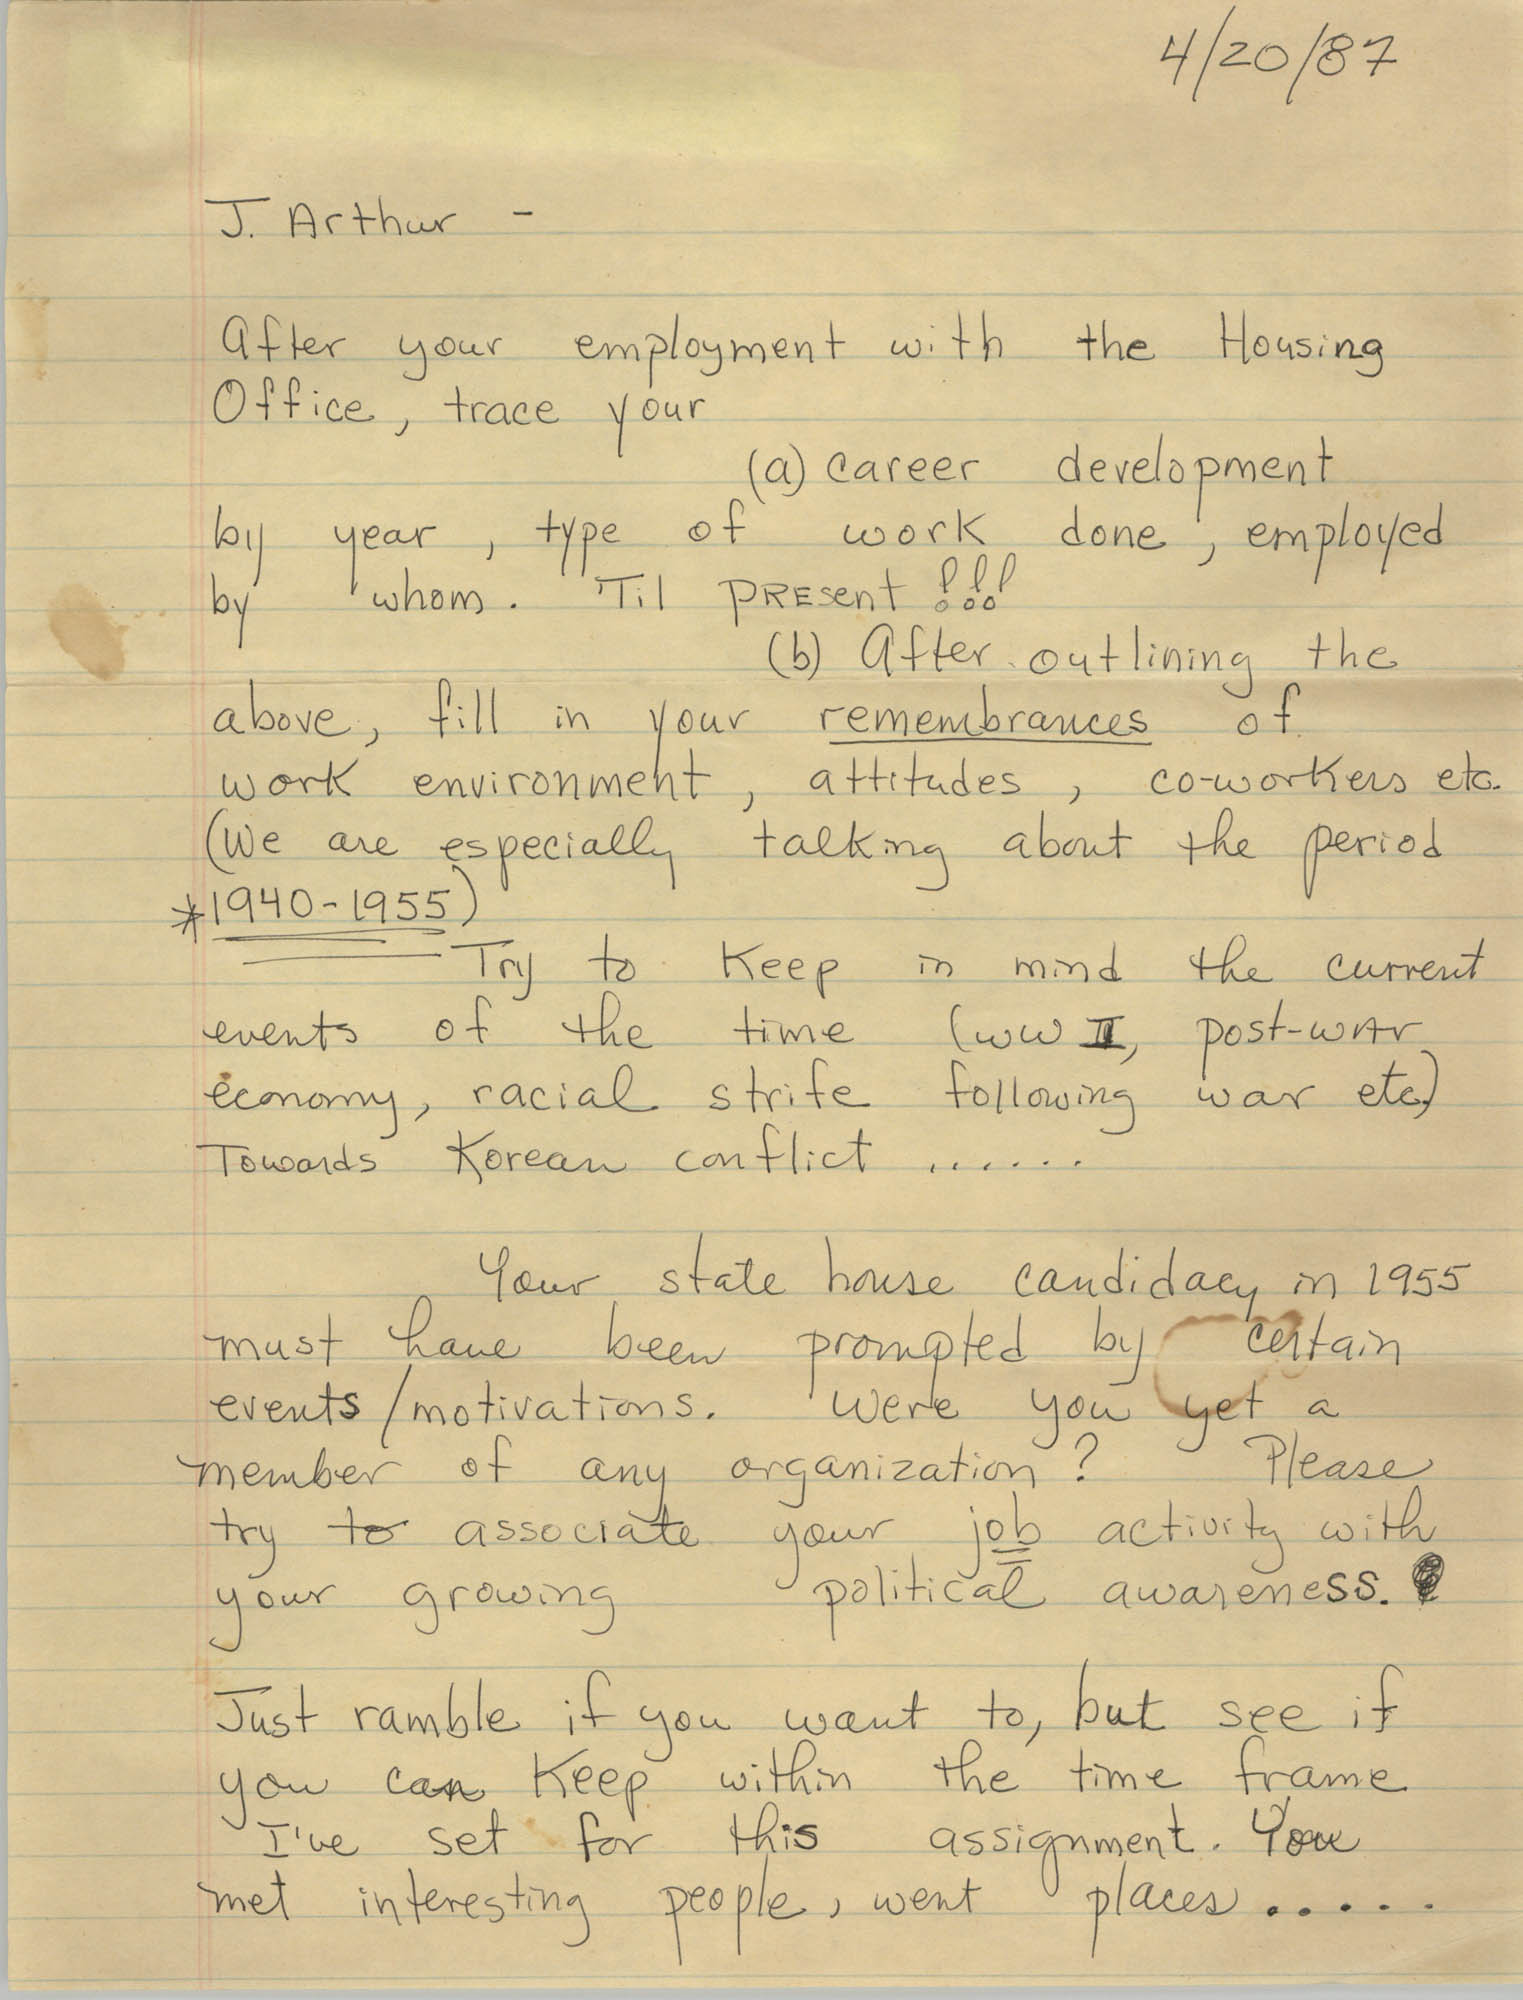 Letter from Millicent Brown to J. Arthur Brown, April 20, 1987